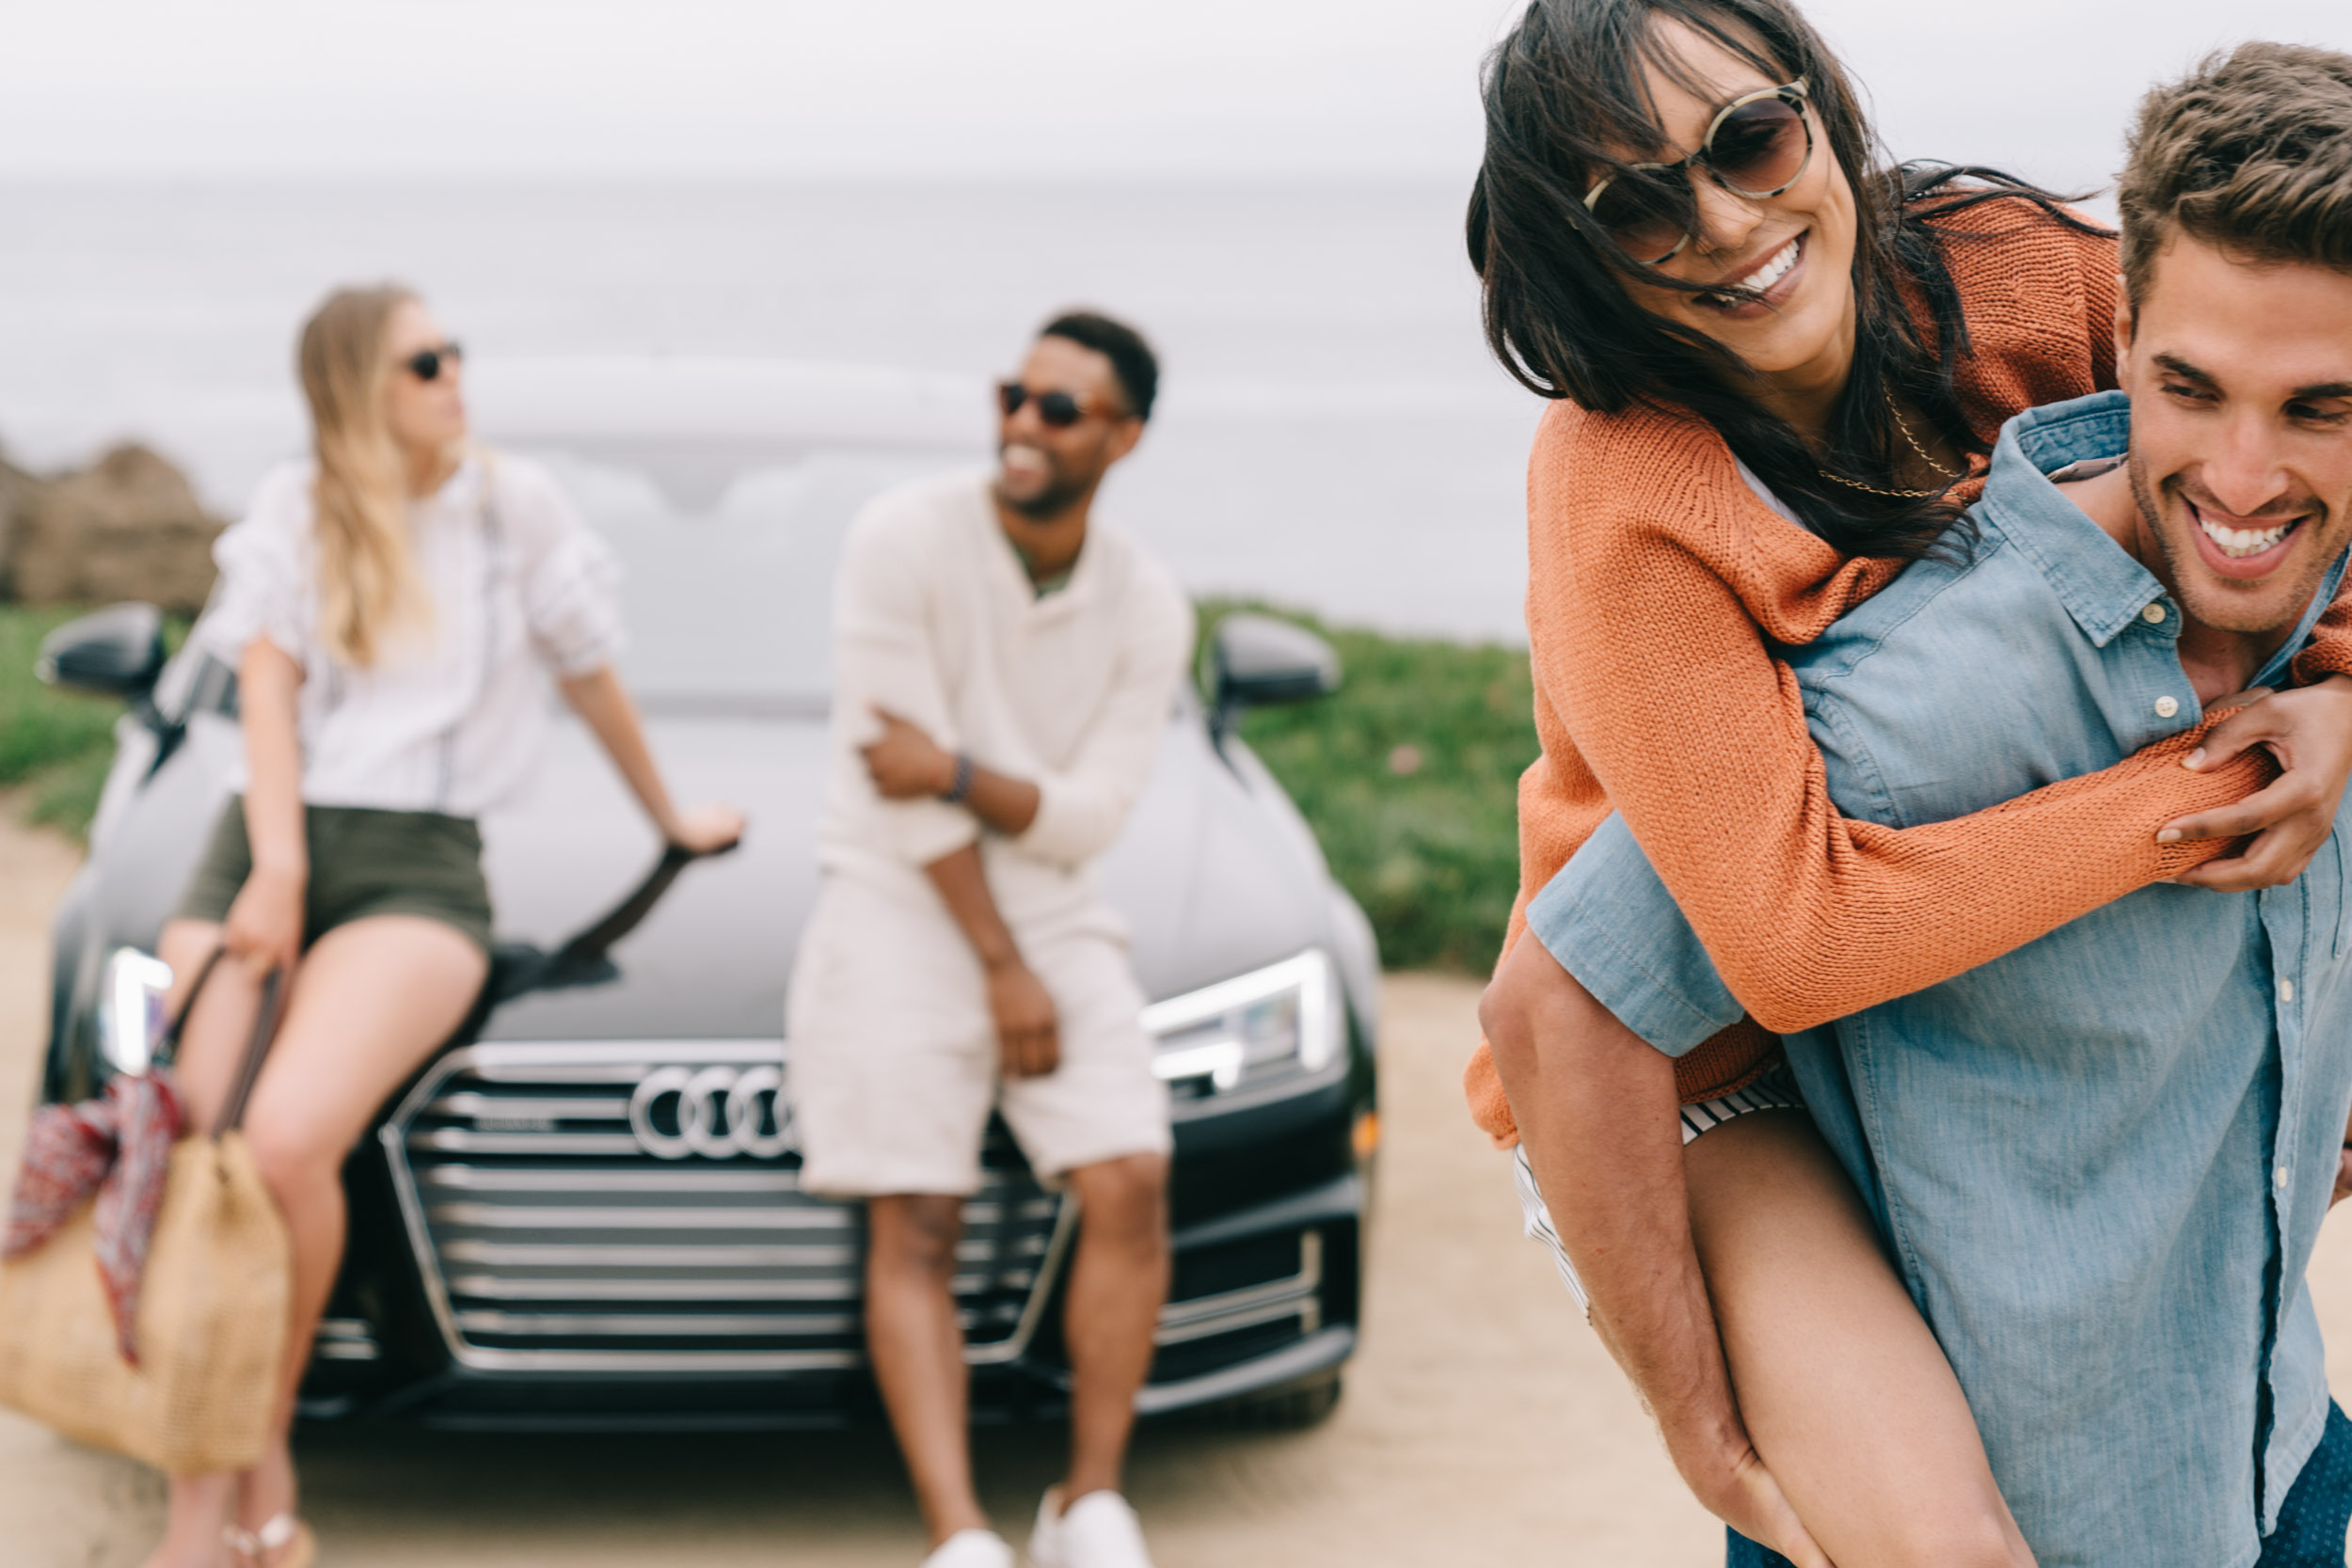 Four friends goofing around by their black Audi A3 at the beach